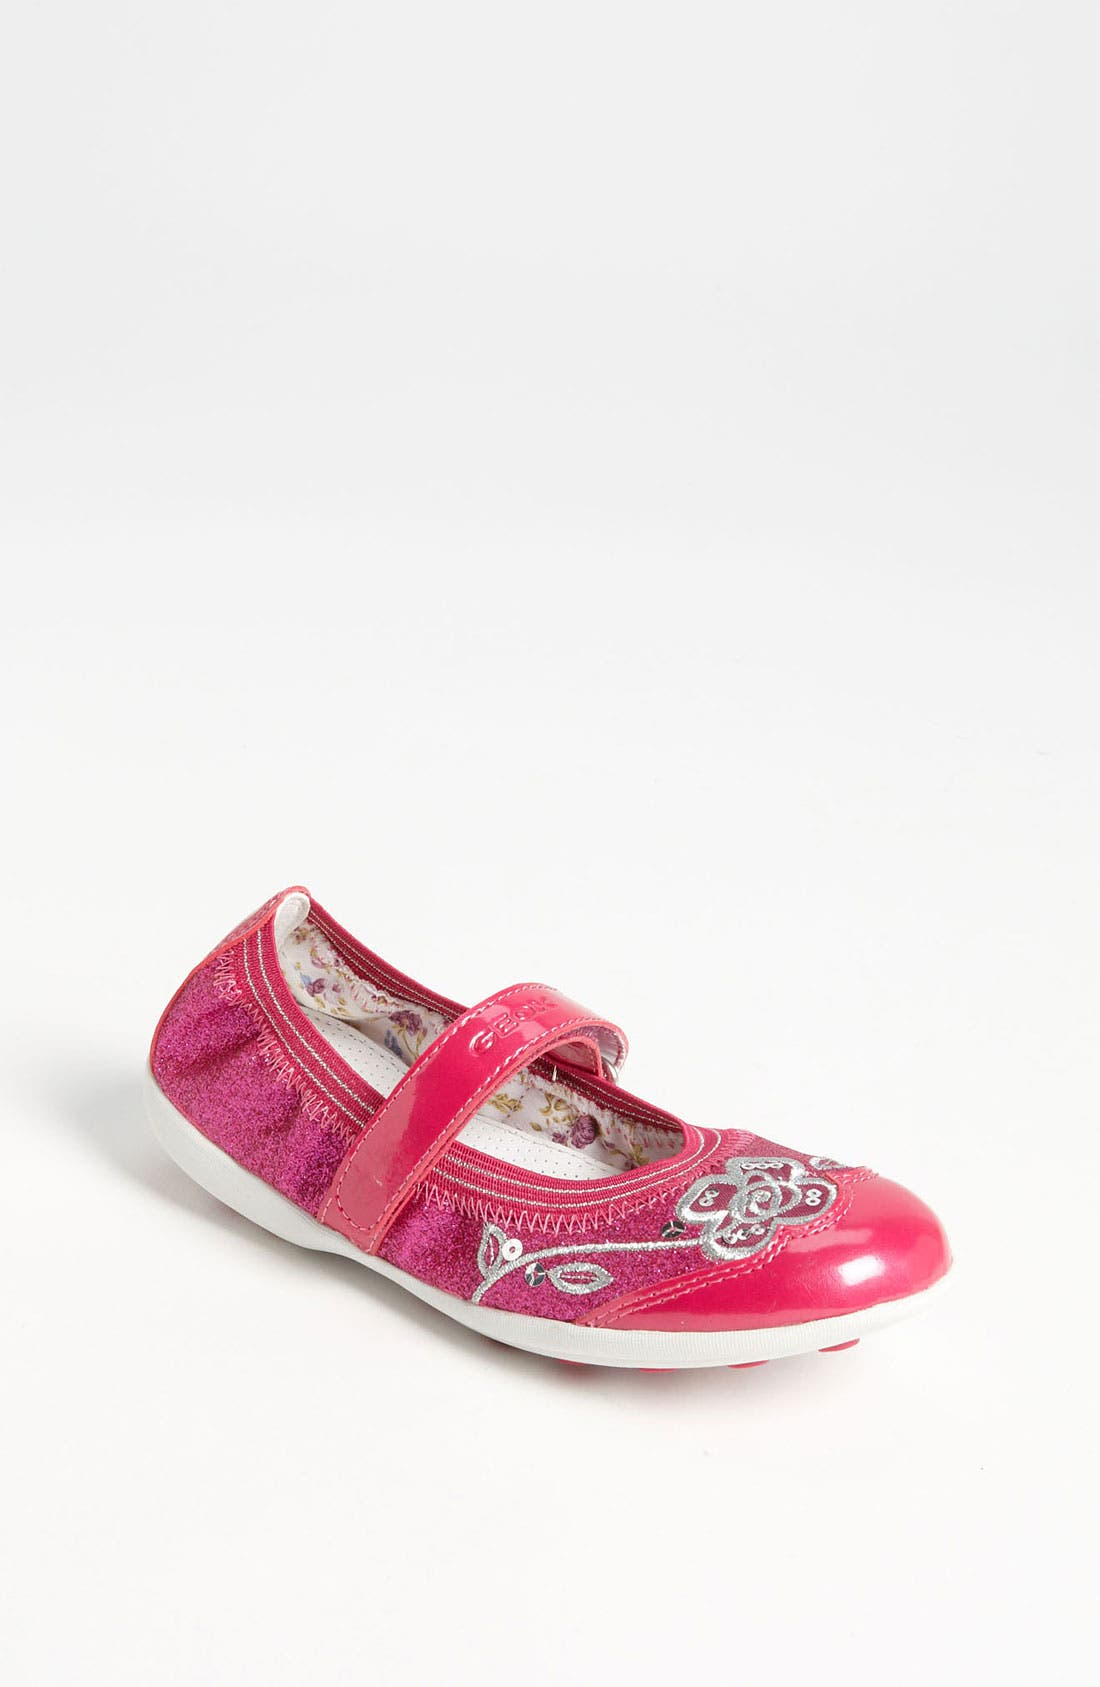 Alternate Image 1 Selected - Geox Junior 'Jodie' Mary Jane Sneaker (Toddler & Little Kid)